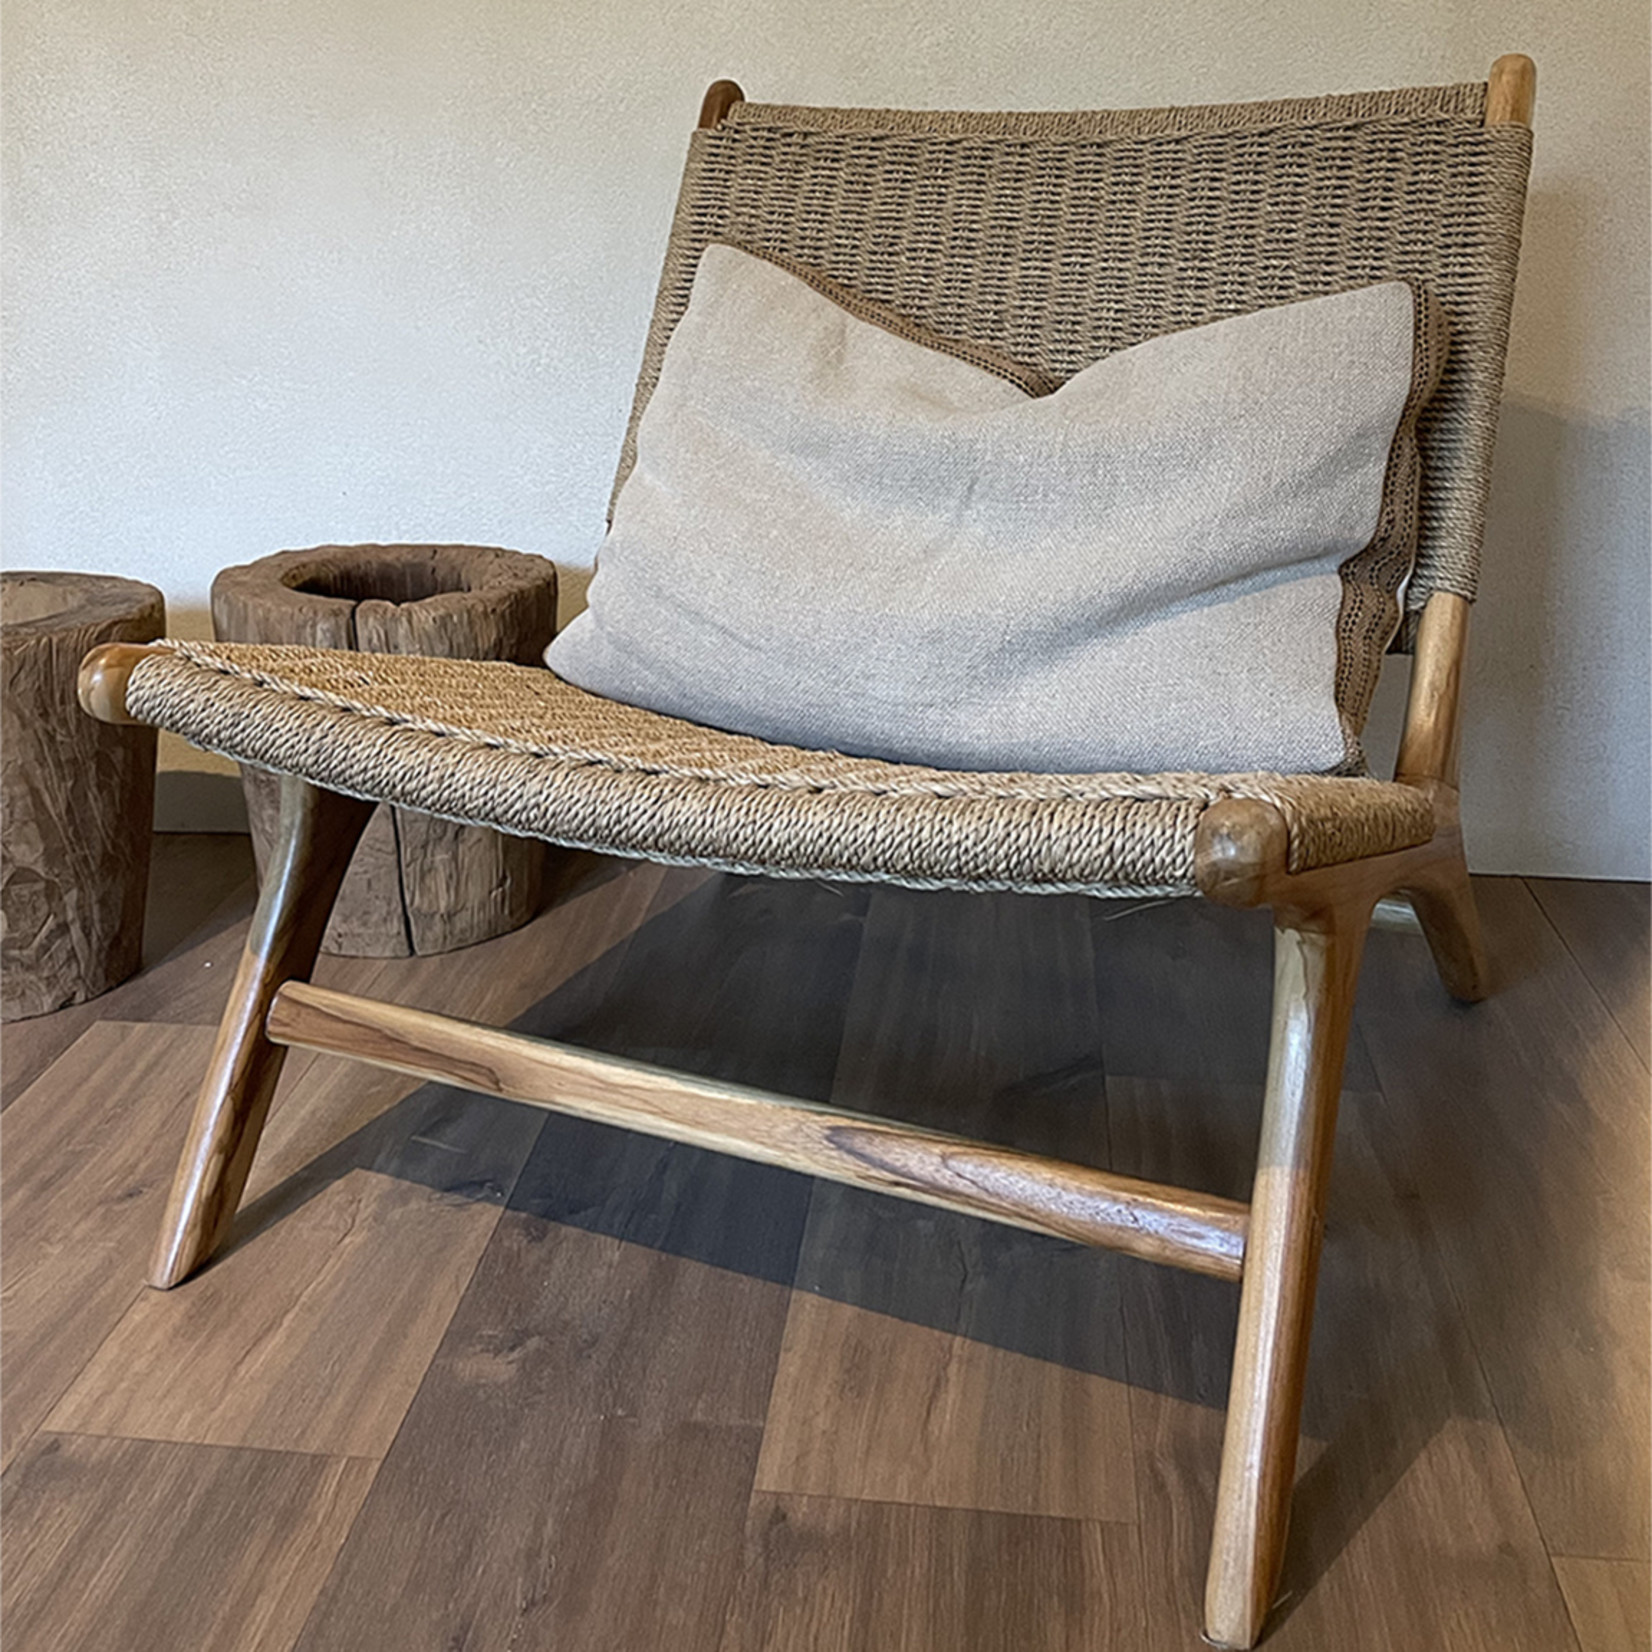 Seagrass lounge chair